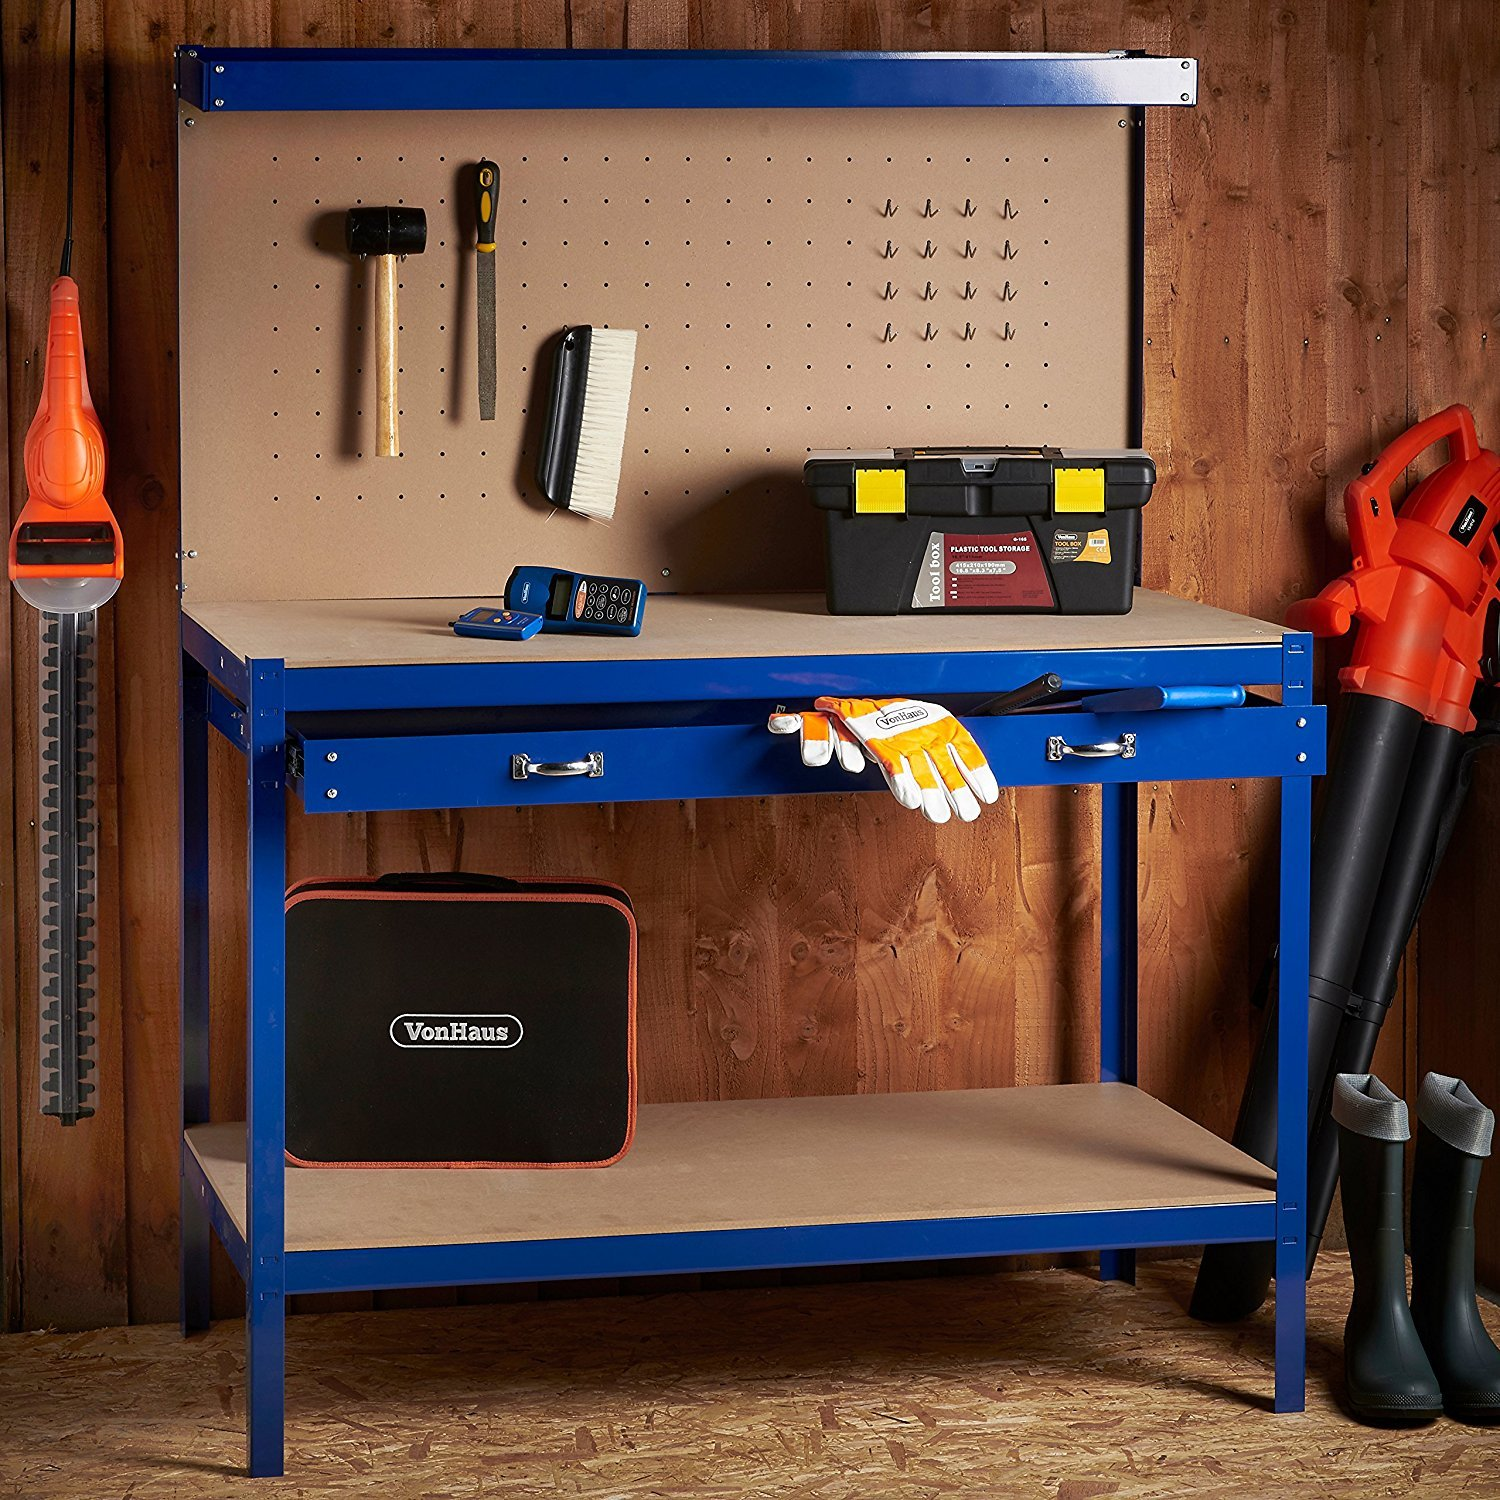 VonHaus Steel Boltless Workbench Worktable Workshop Station With Drawer And Pegboard 12 Pegs Massive Capacity 230 Kg 120L X 60W 155H Cm Amazoncouk